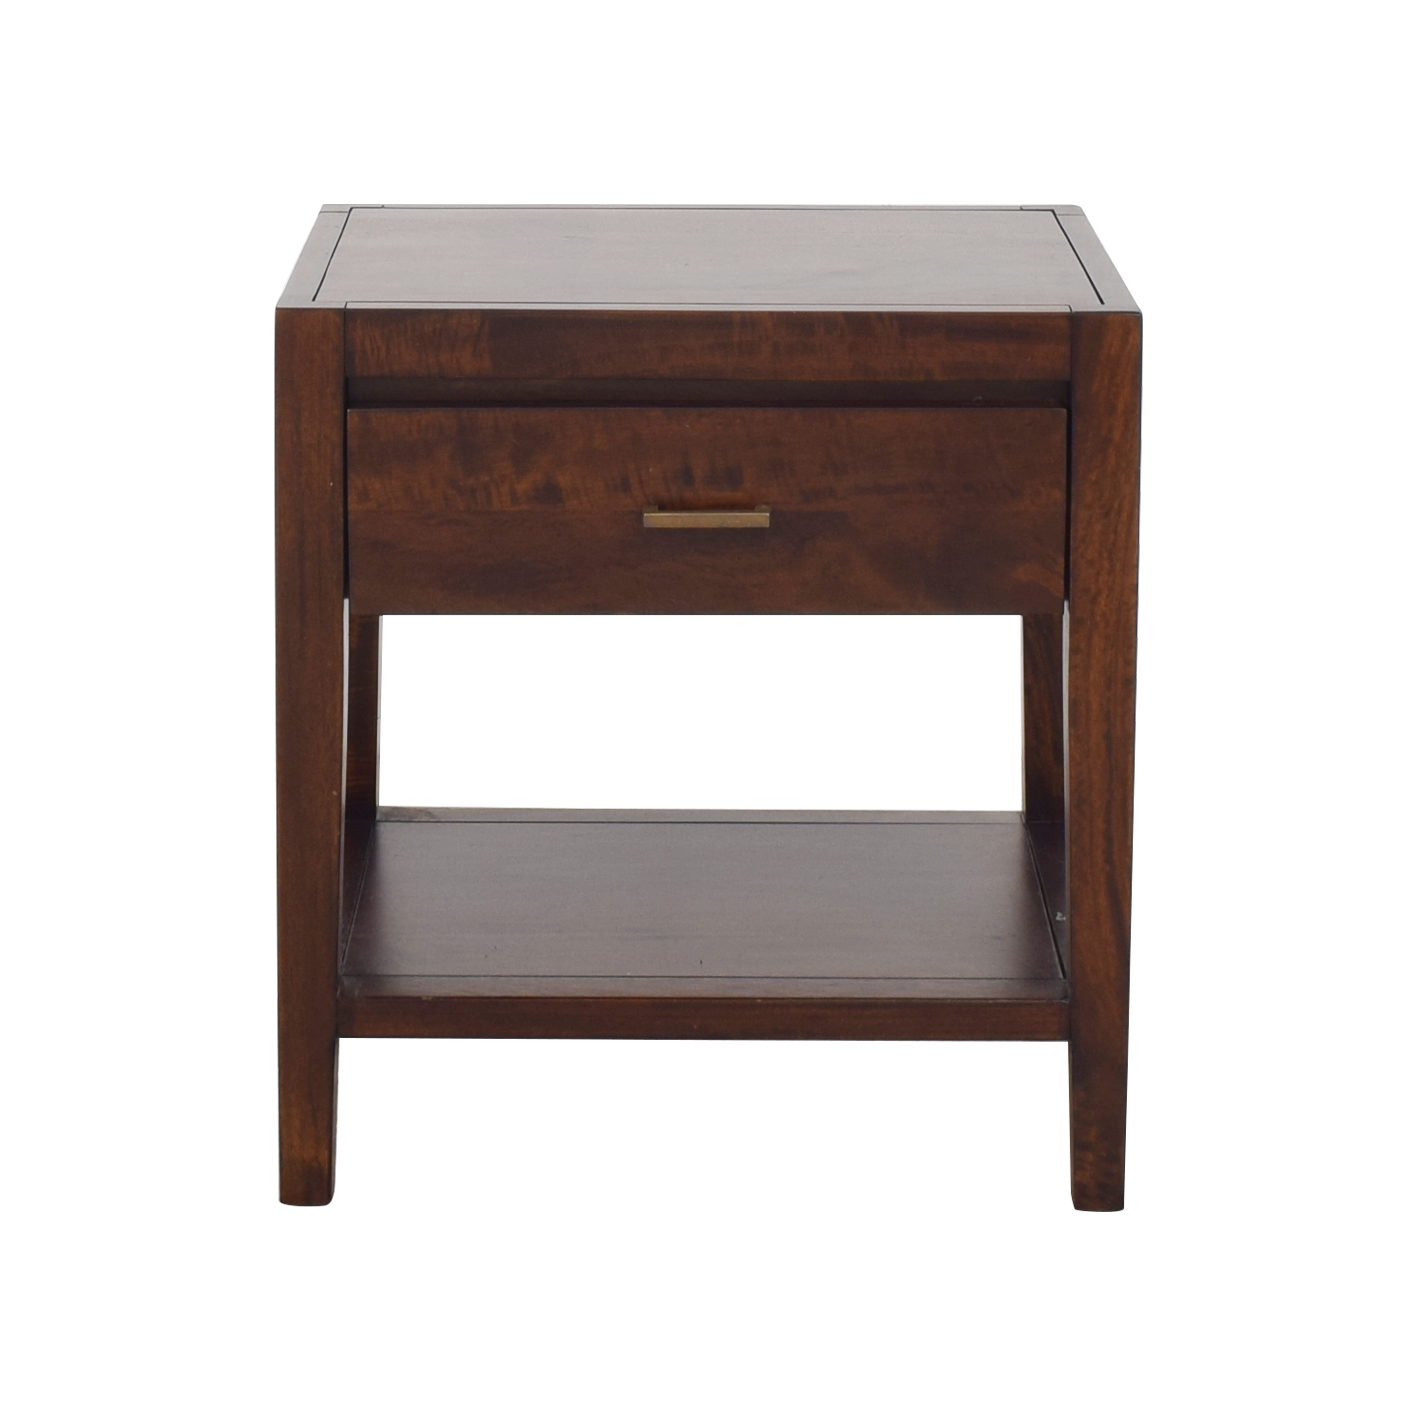 Crate & Barrel Crate & Barrel Dawson Nightstand ct